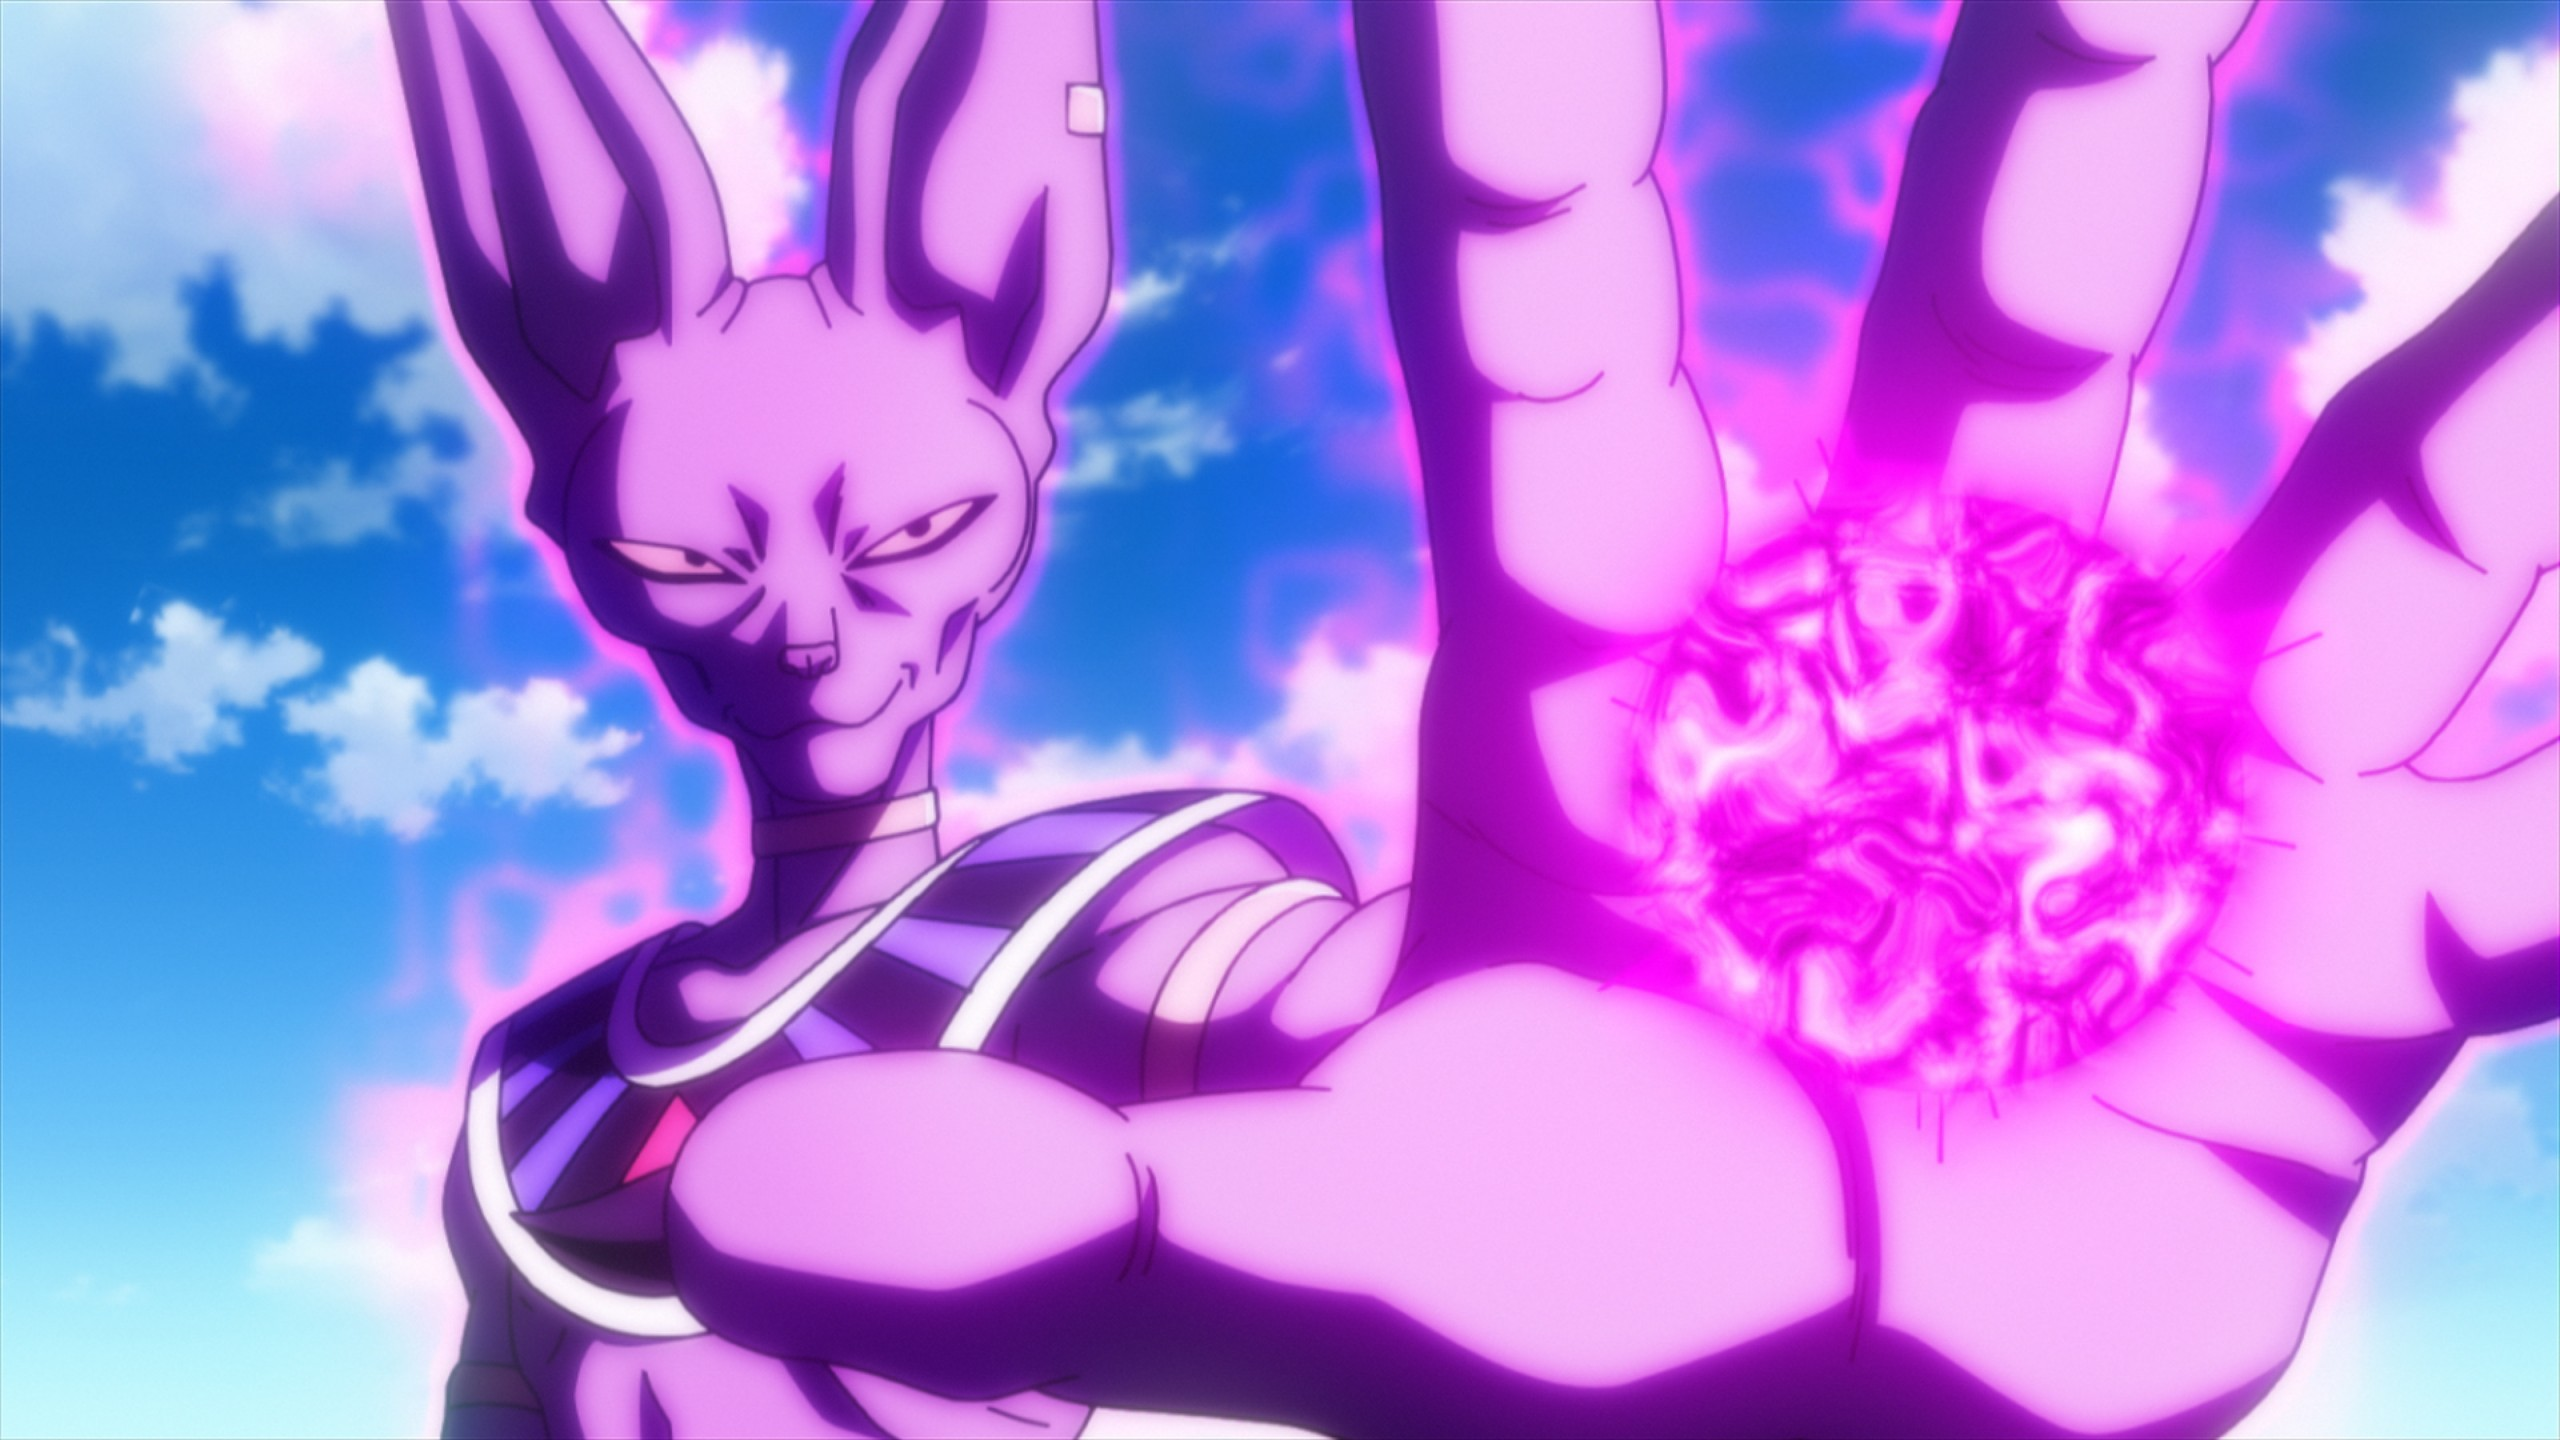 2560x1440 39 Beerus (Dragon Ball) HD Wallpapers | Backgrounds - Wallpaper Abyss